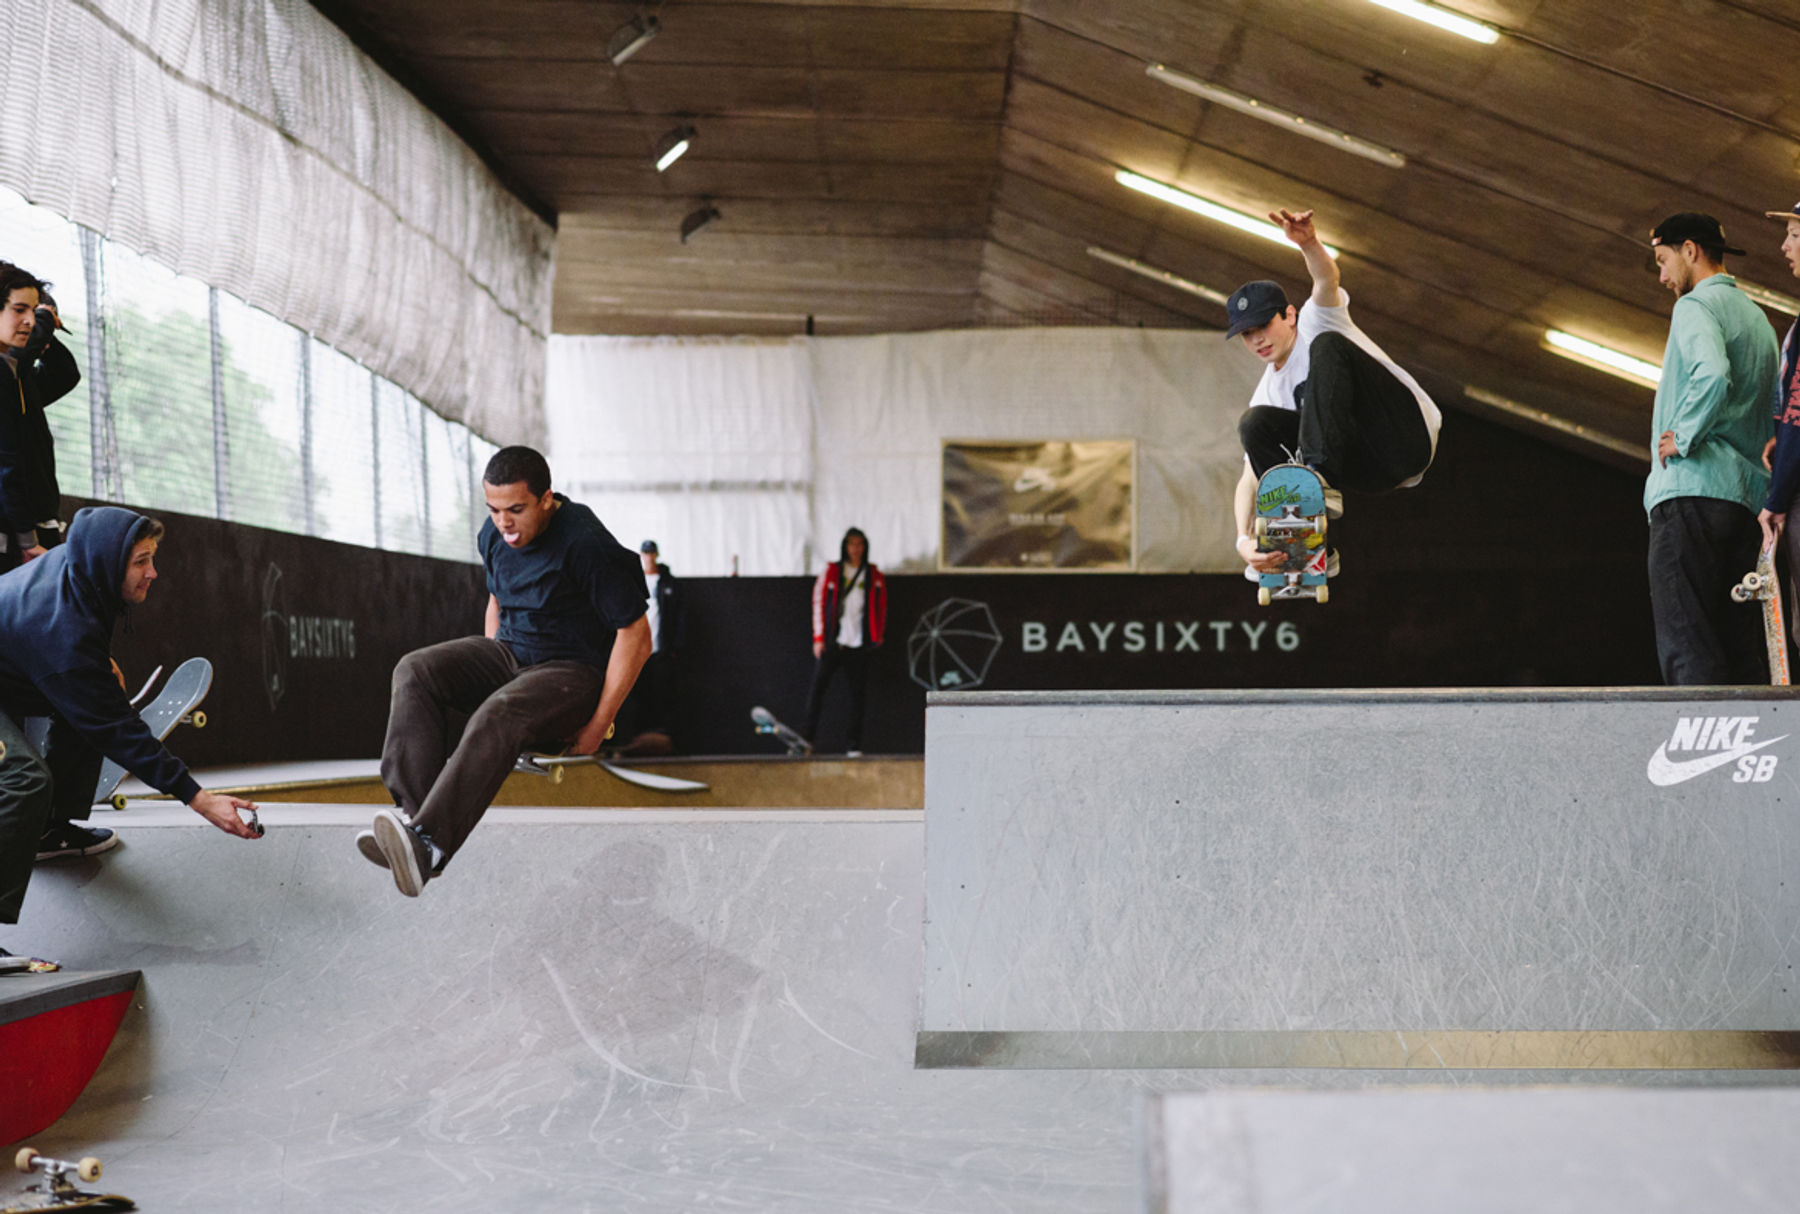 _IHC5557e-Reuben-Russo-Charlie-Birch-Nike-SB-London-AM-Day-2-June-2015-Photographer-Maksim-Kalanep